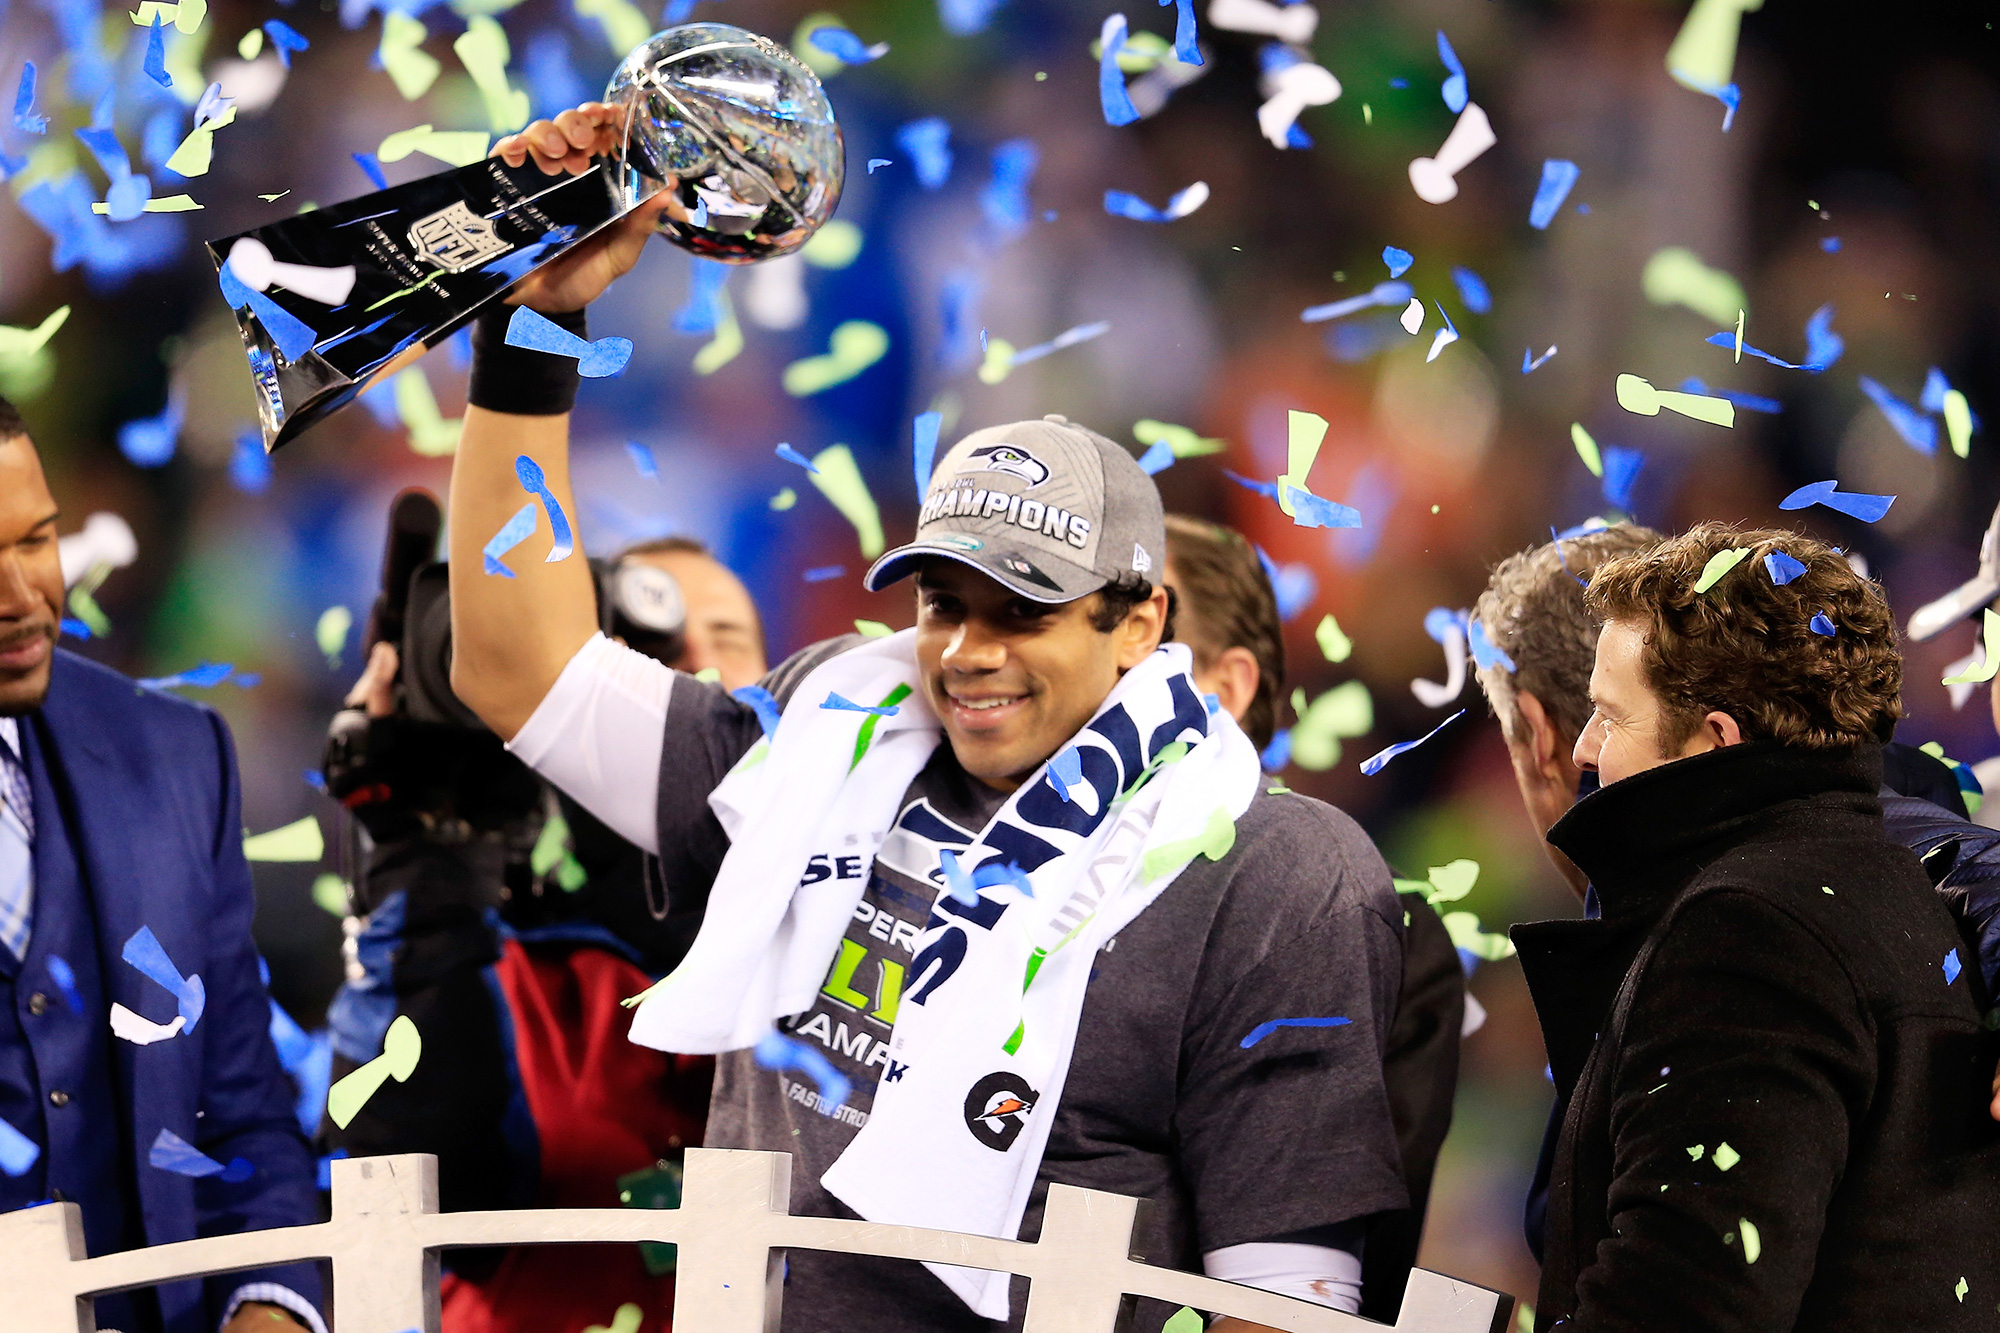 Russell Wilson #3 of the Seattle Seahawks celebrates with the Vince Lombardi trophy after defeating the Denver Broncos 43-8 in Super Bowl XLVIII at MetLife Stadium on February 2, 2014 in East Rutherford